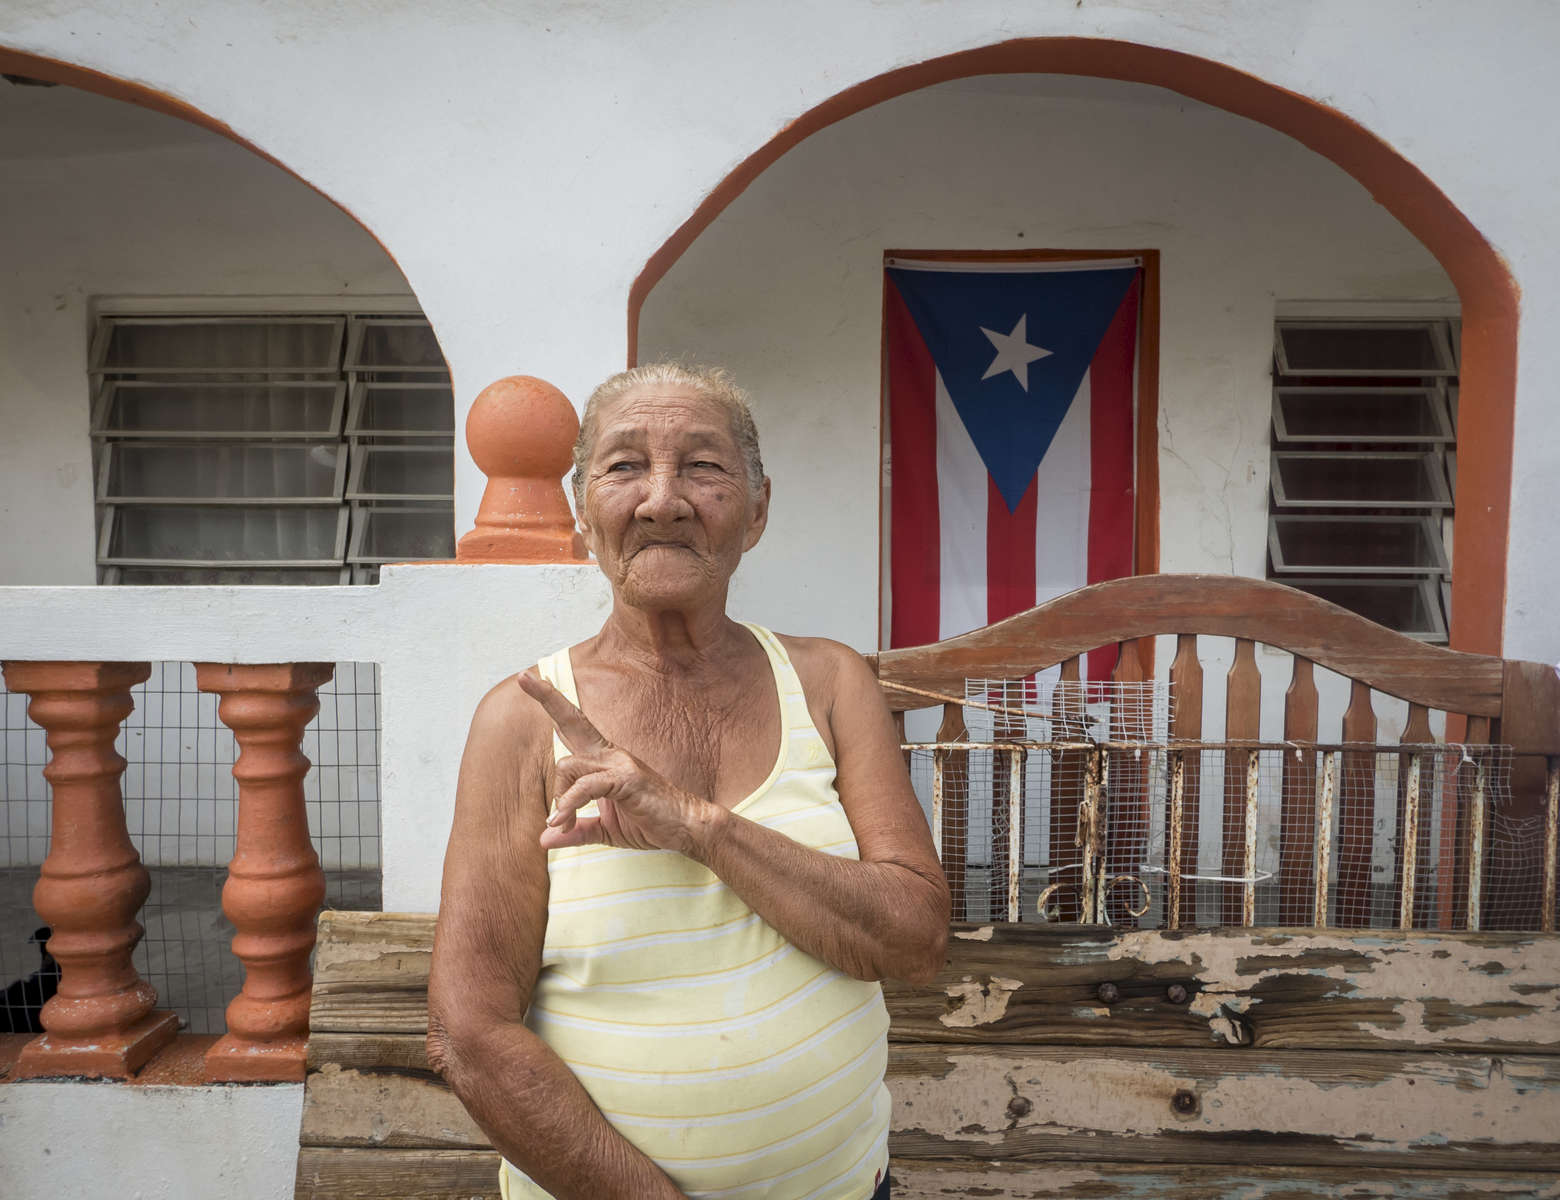 A hurricane victim stands outside her home at Las Mareas, Puerto Rico on Saturday, November 11, 2017. Hurricane Maria has wreaked havoc on September 20, causing a level of widespread destruction in the island of Puerto Rico. The category four hurricane left thousands hungry and homeless.